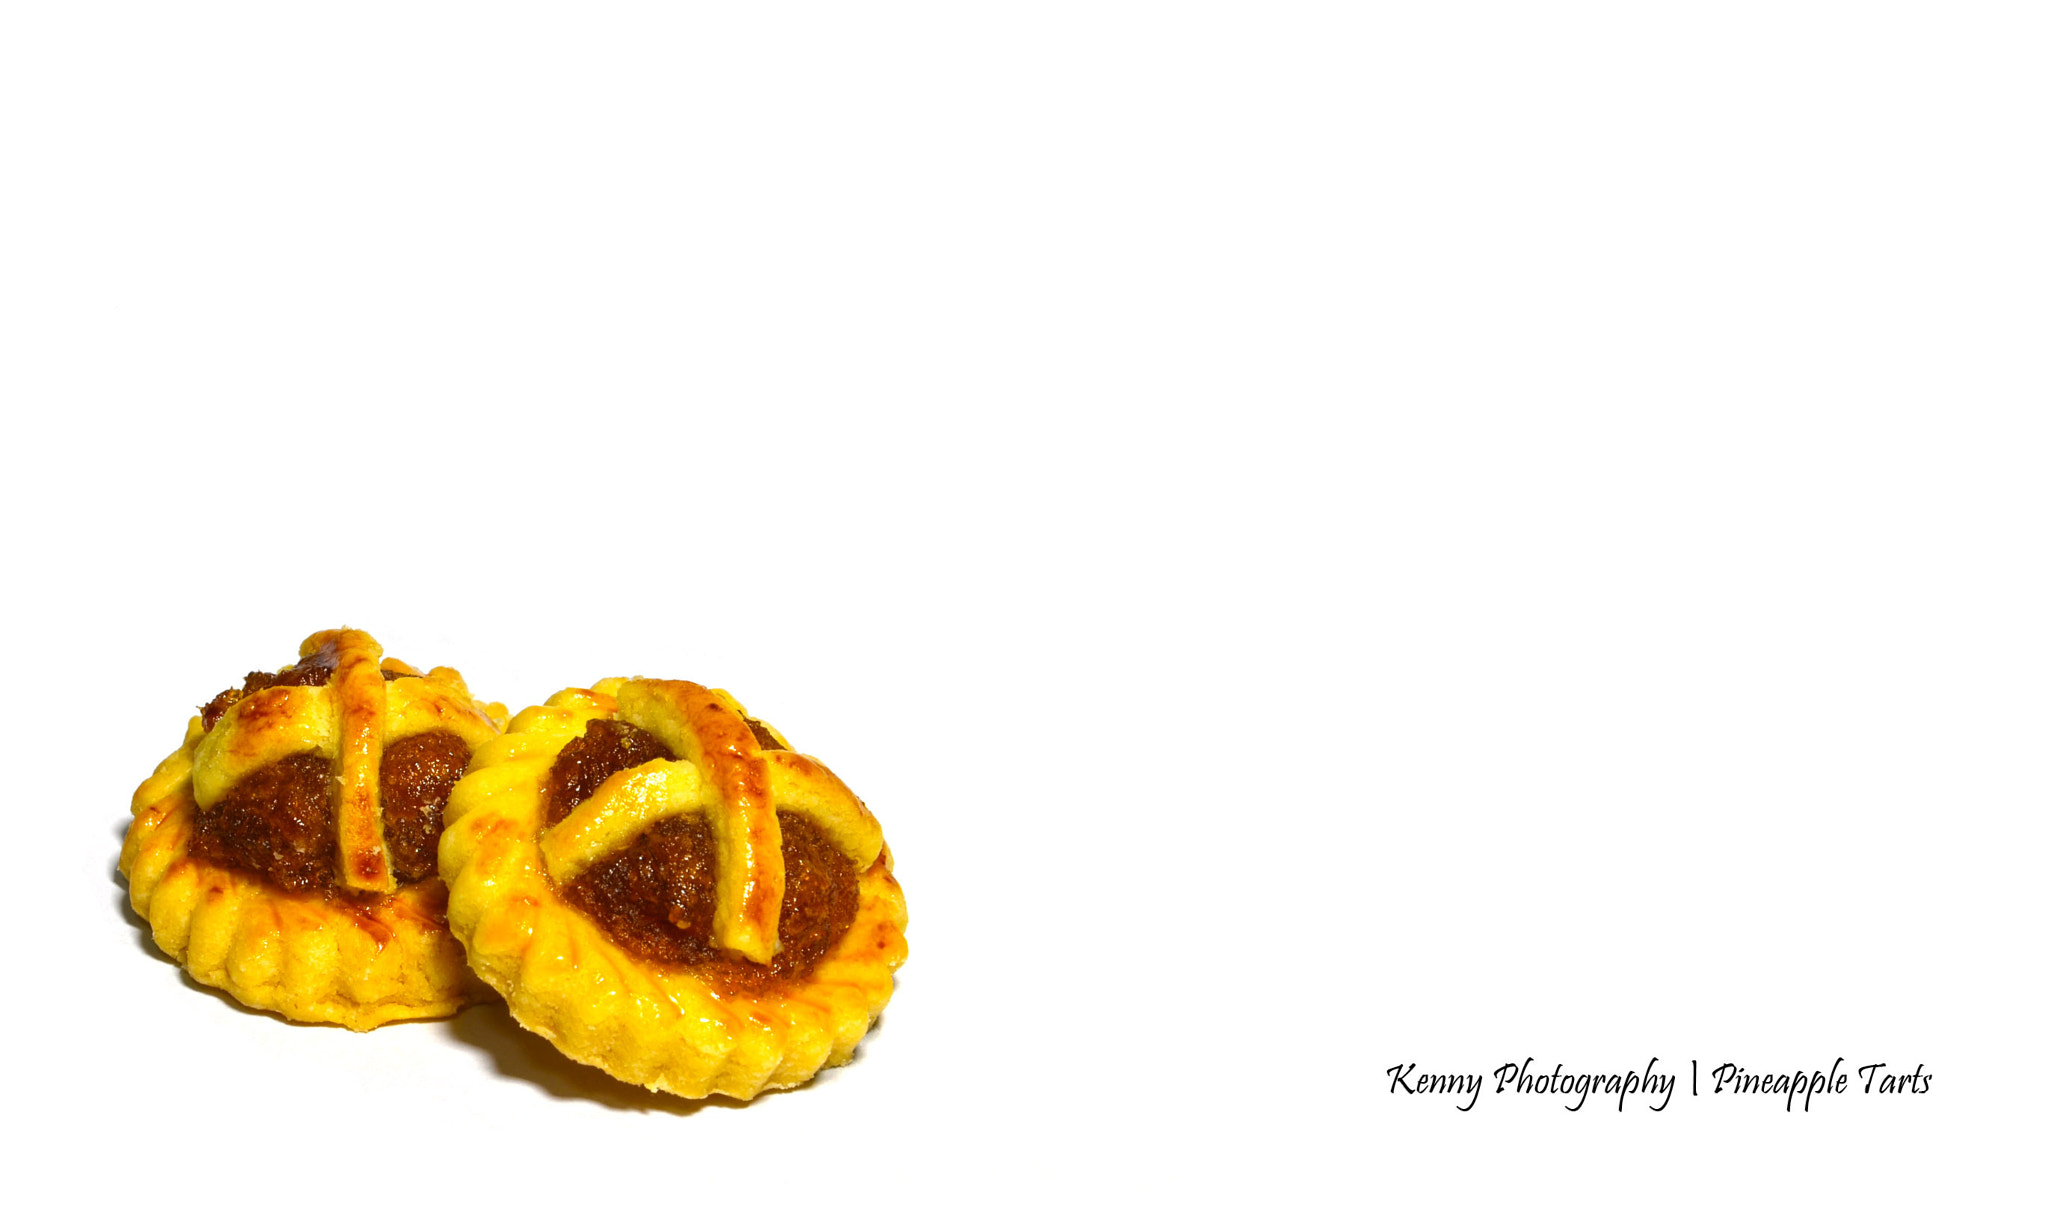 Photograph Pineapple Tarts by kennychua on 500px